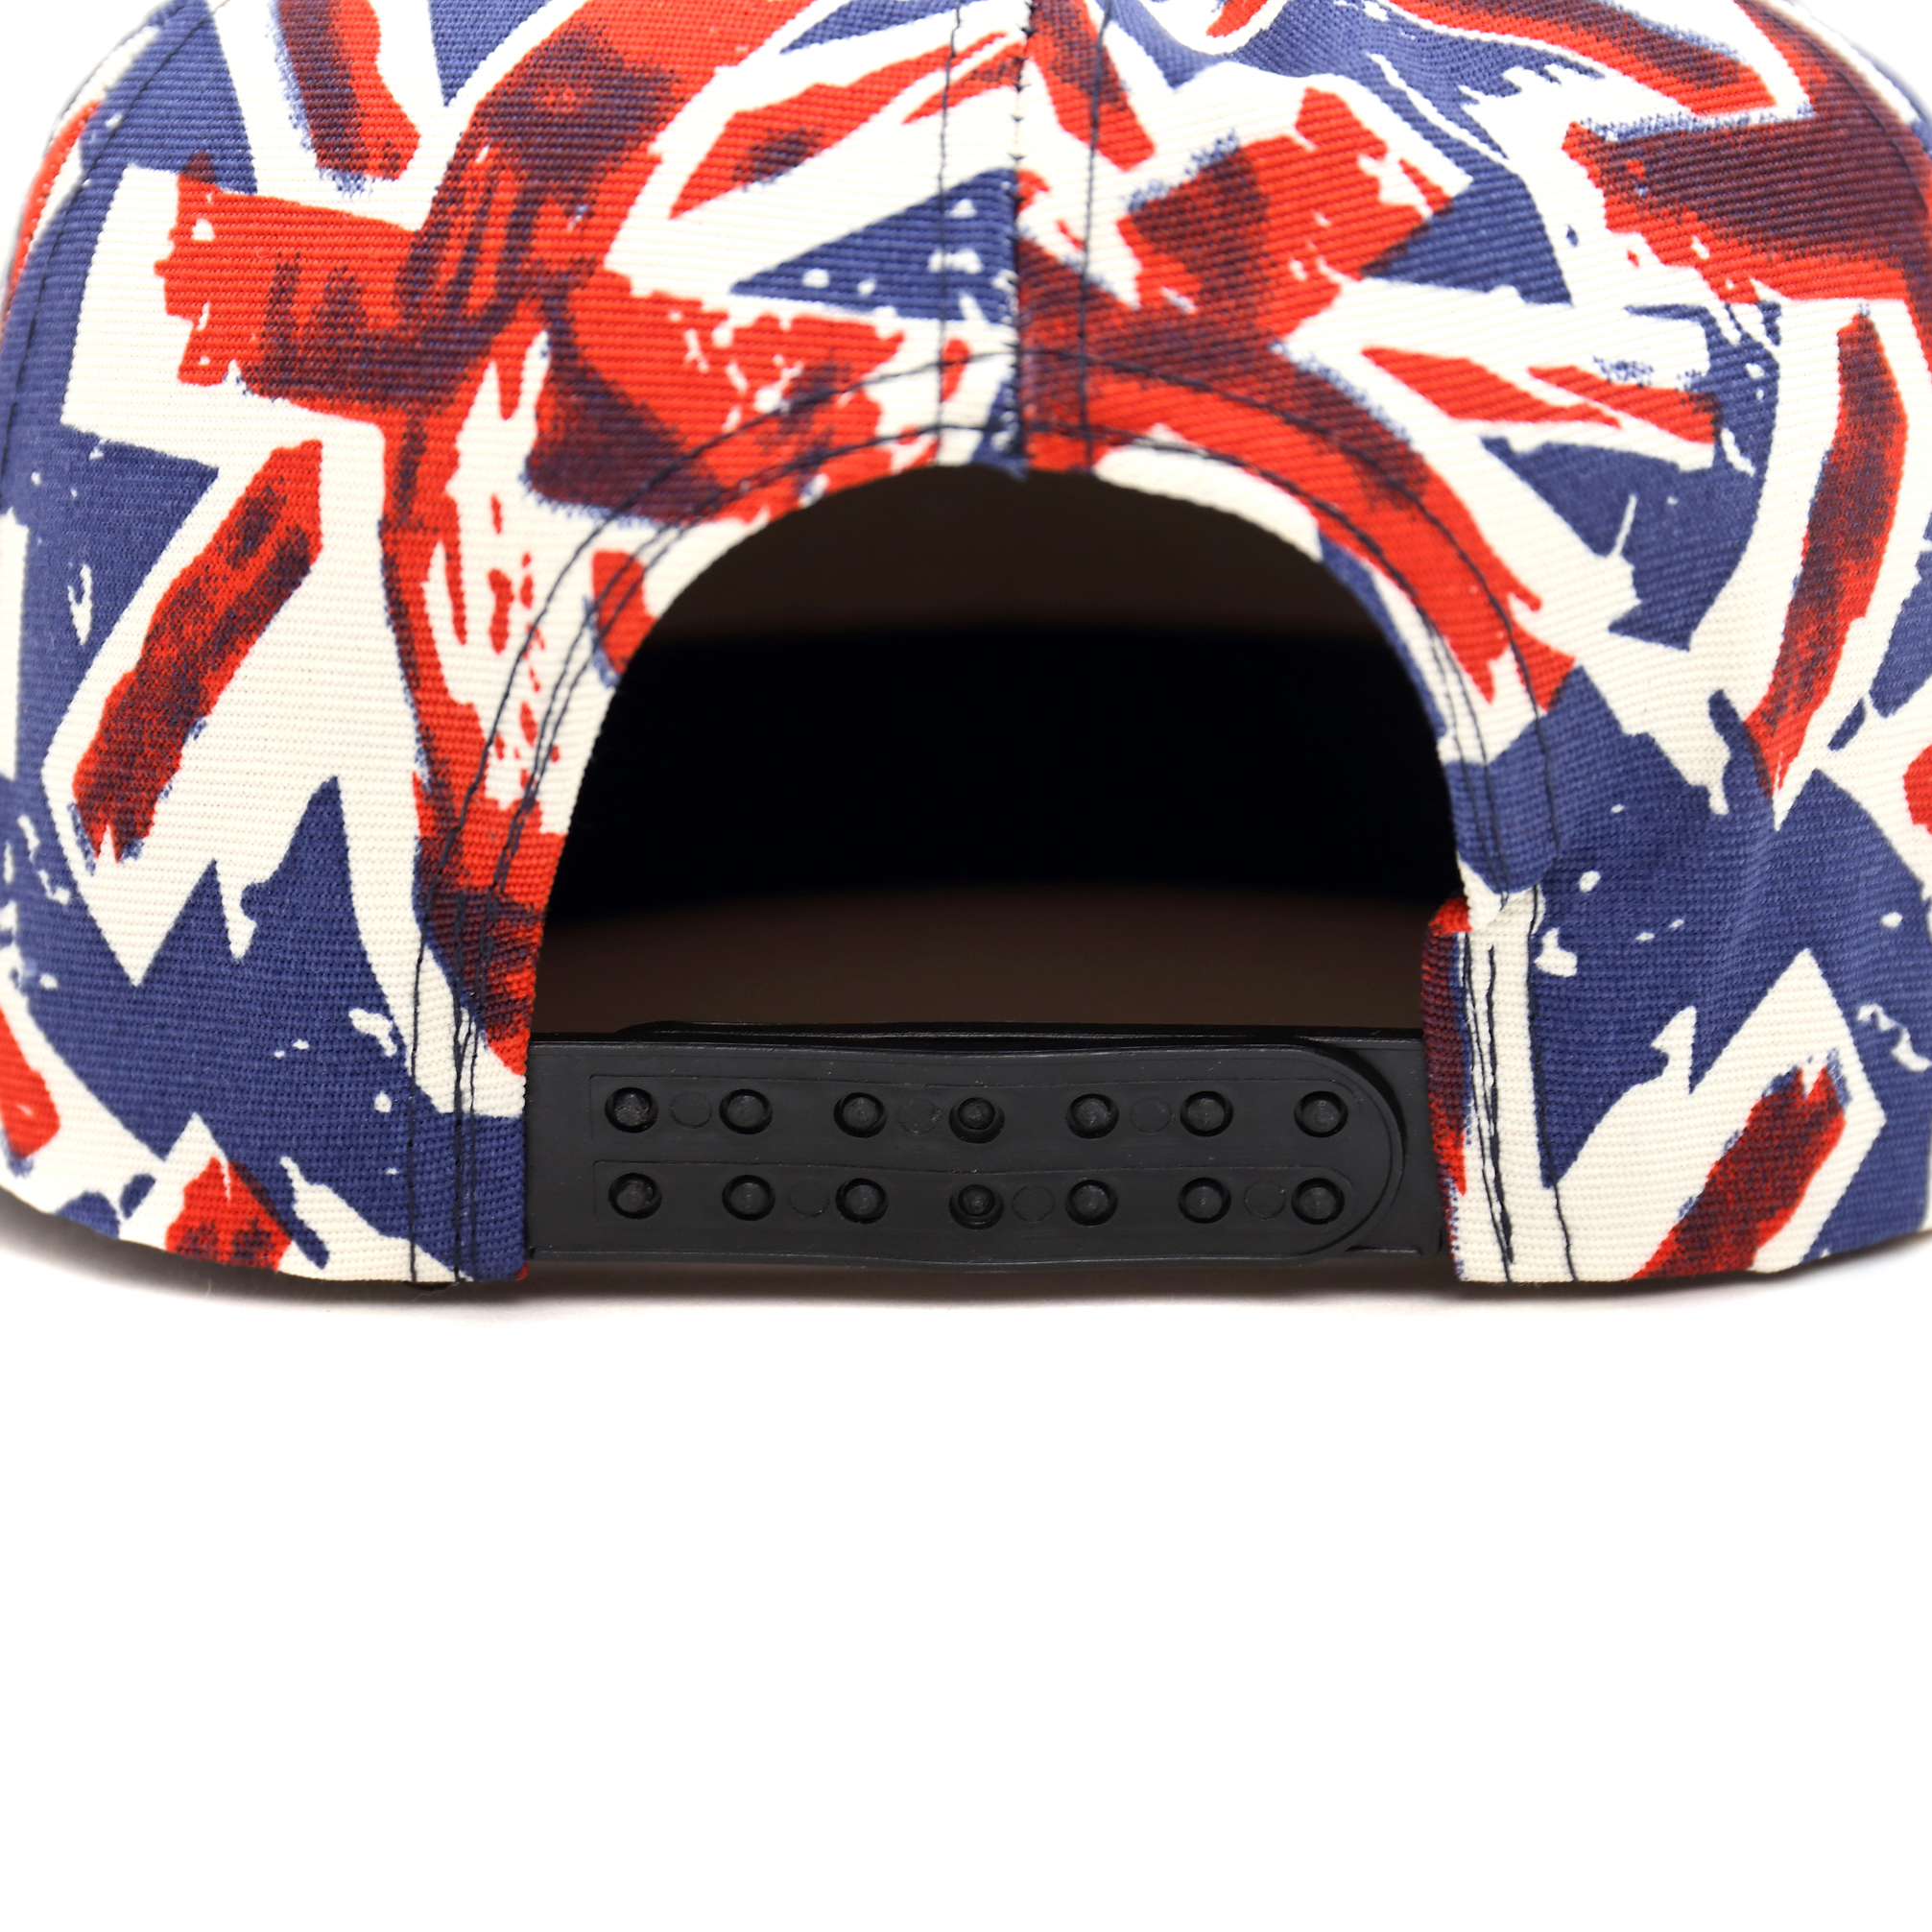 England Snapback Hat with Union Jack Design Print